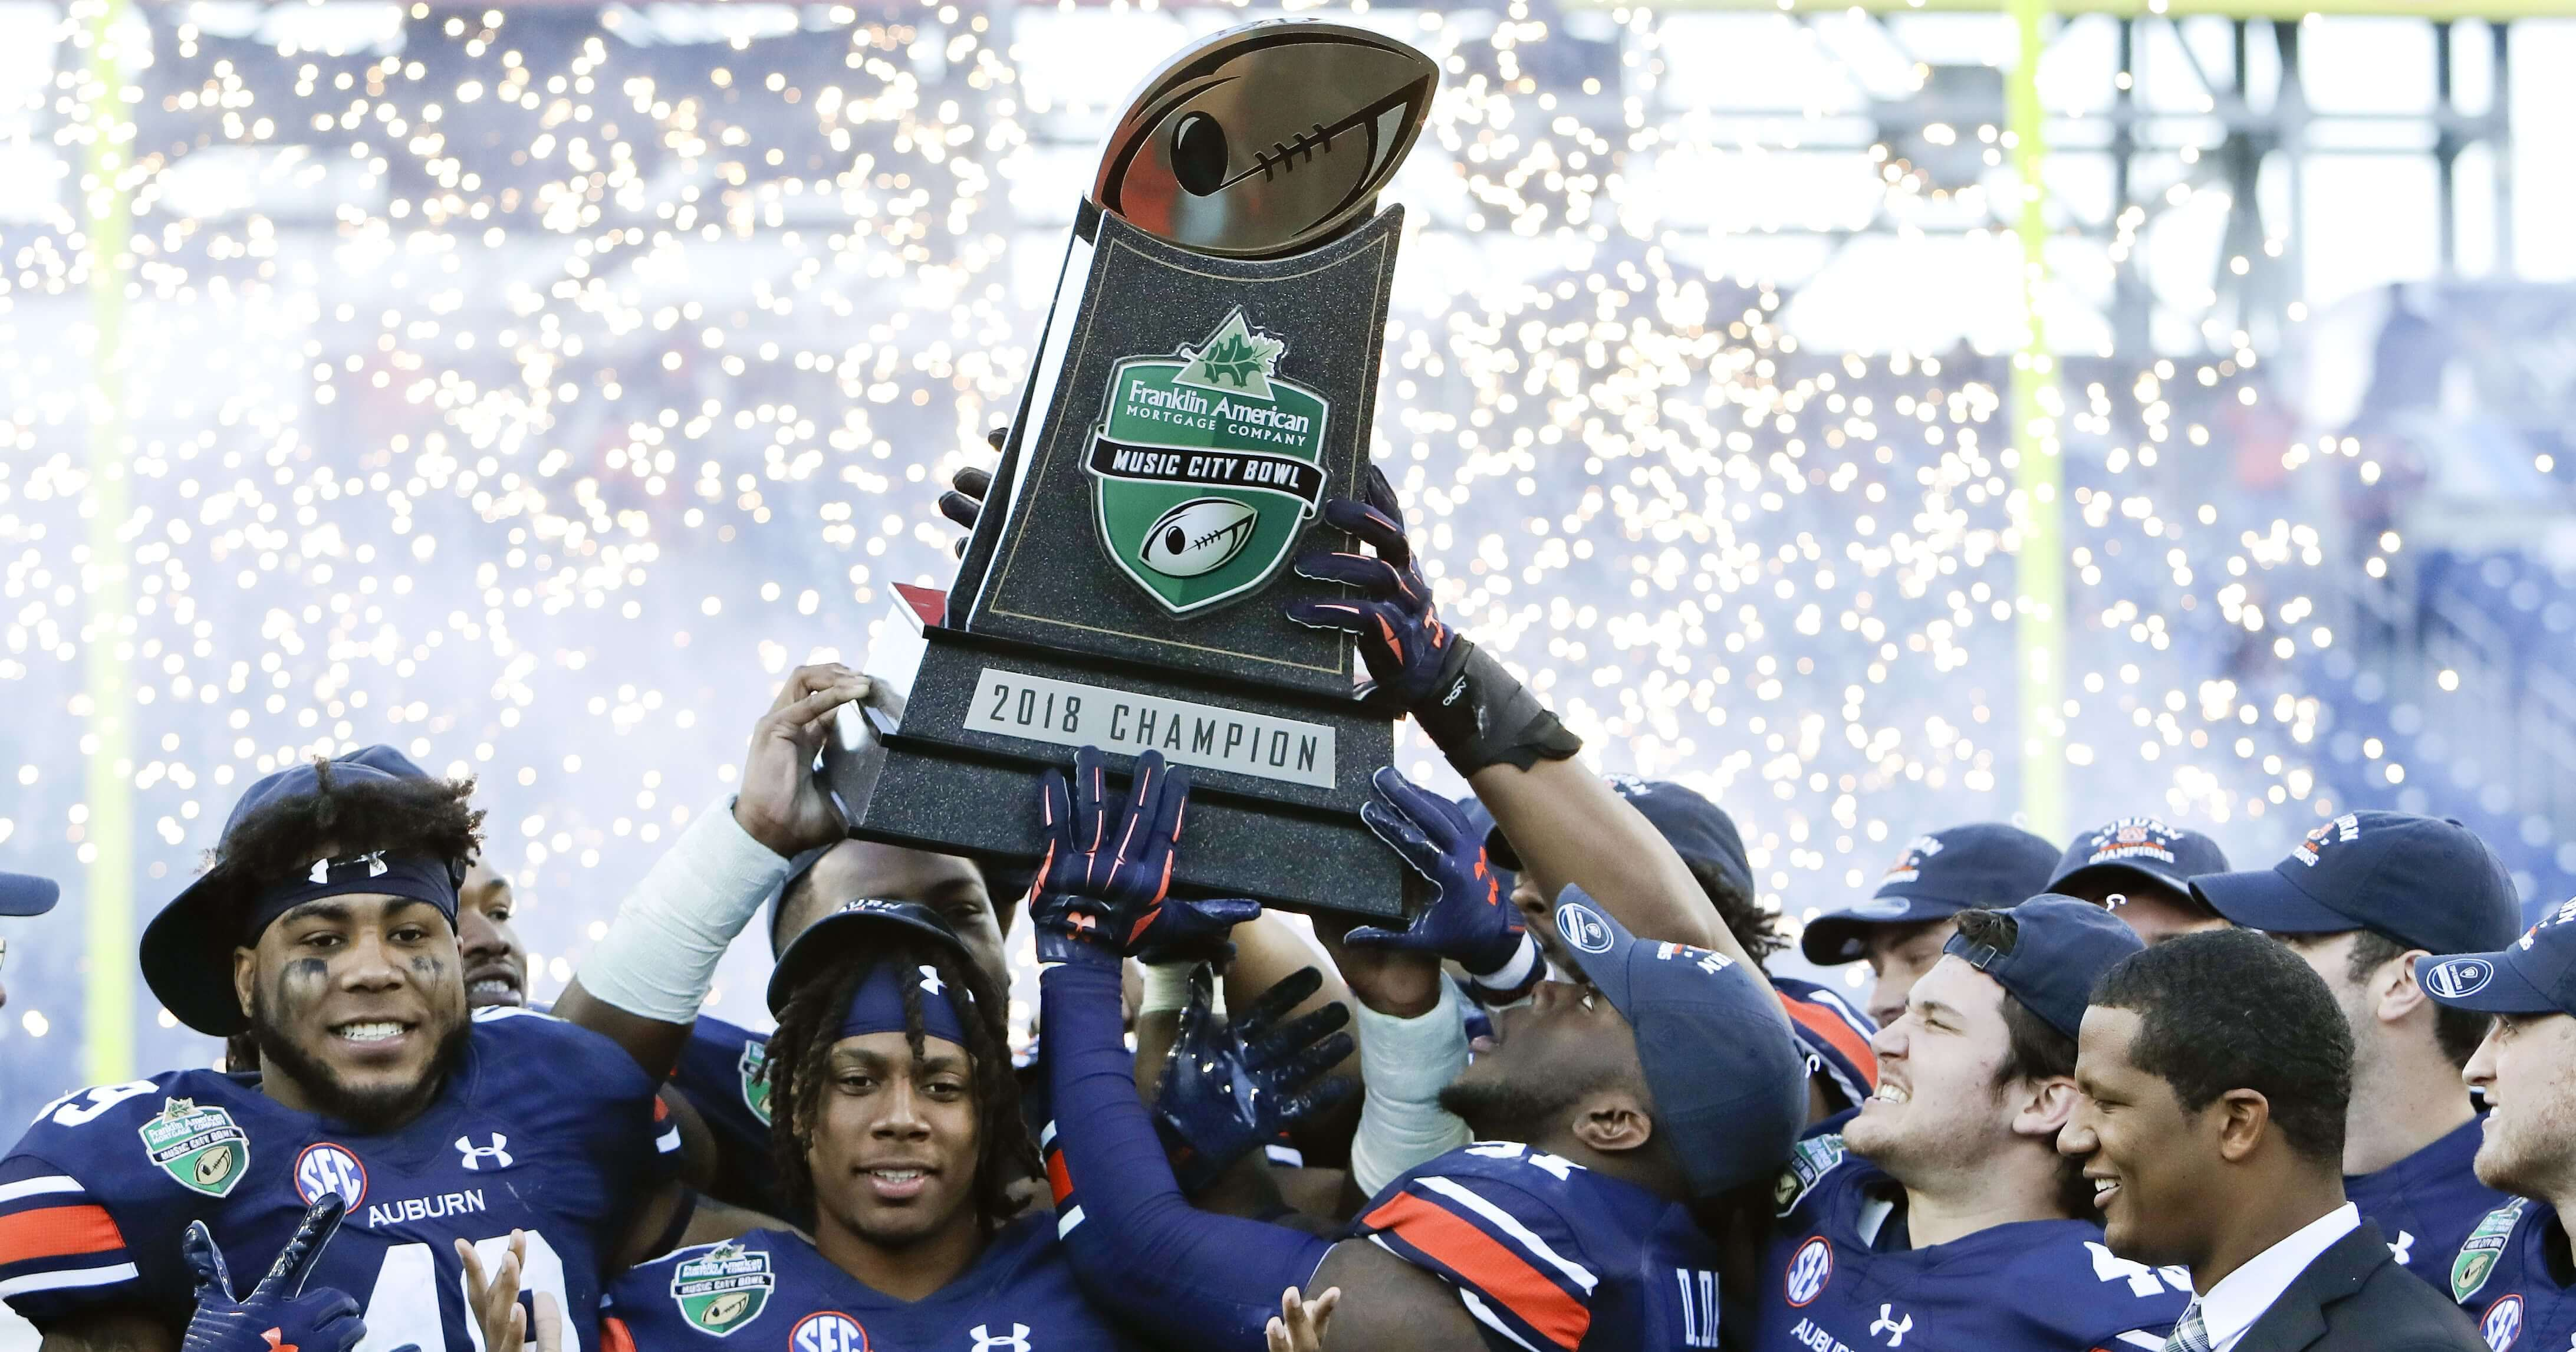 Auburn players celebrate after defeating Purdue to win the Music City Bowl on Friday in Nashville, Tennessee.